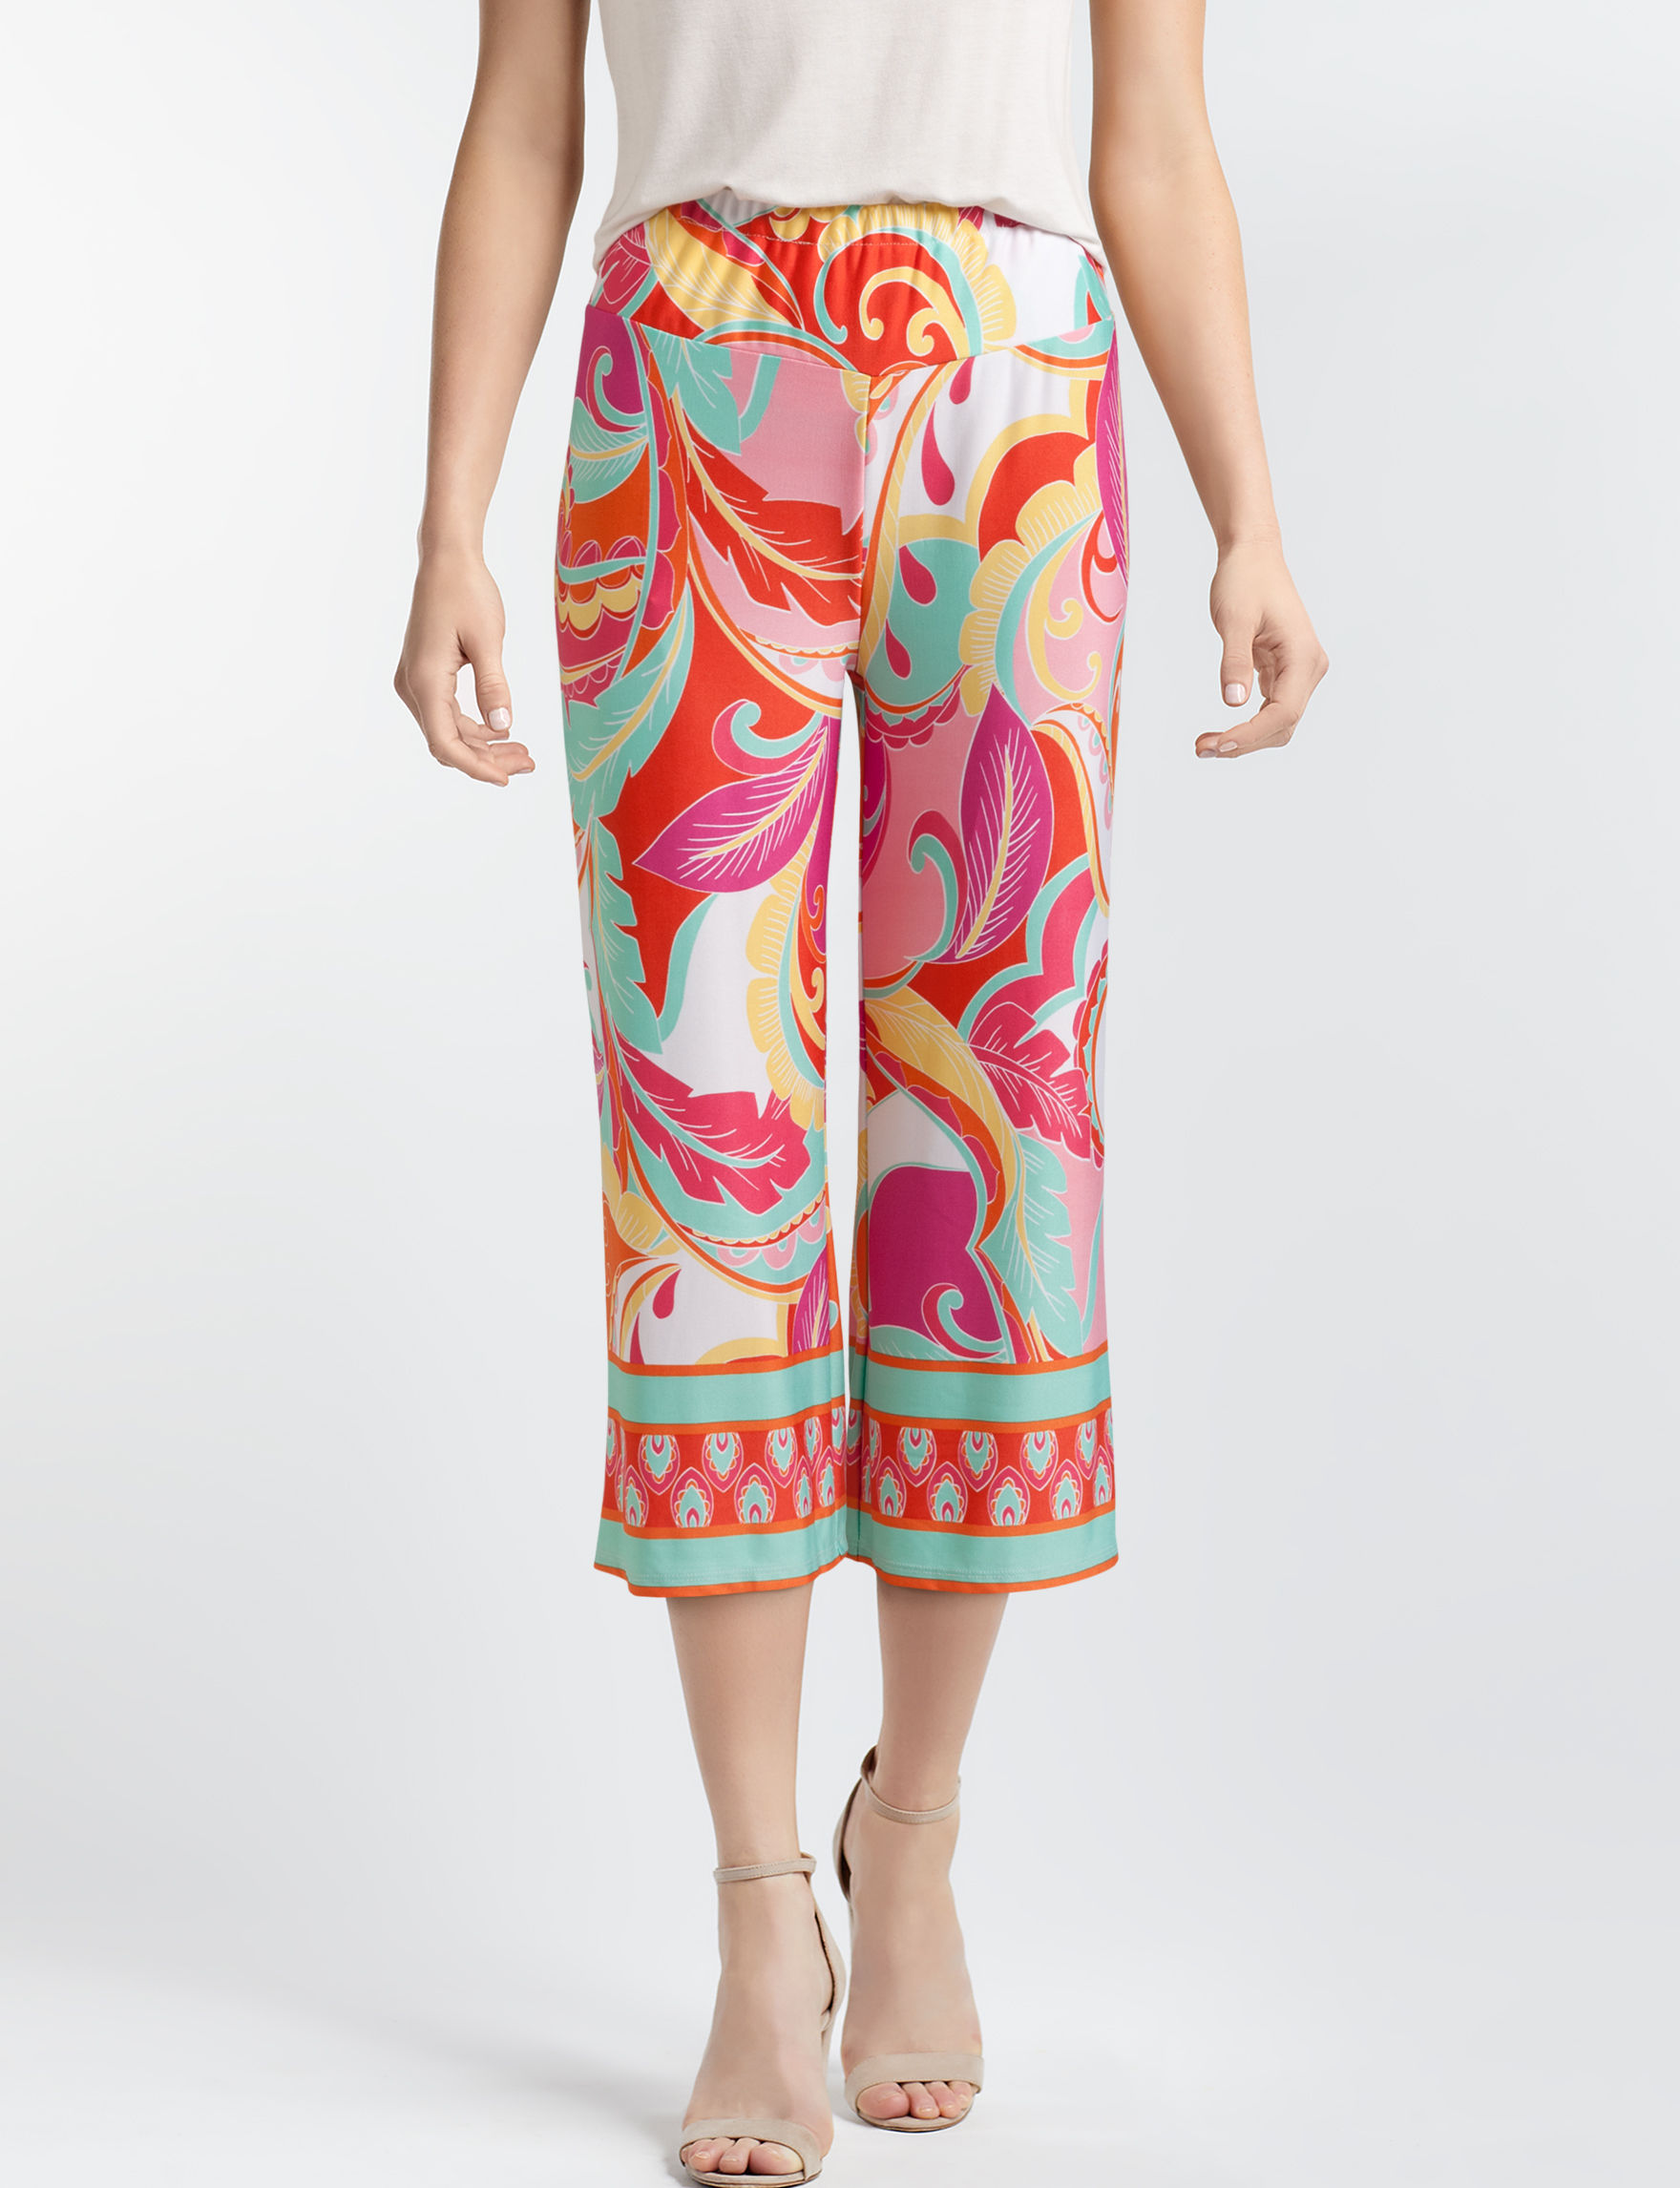 Sunny Leigh Pink Multi Capris & Crops